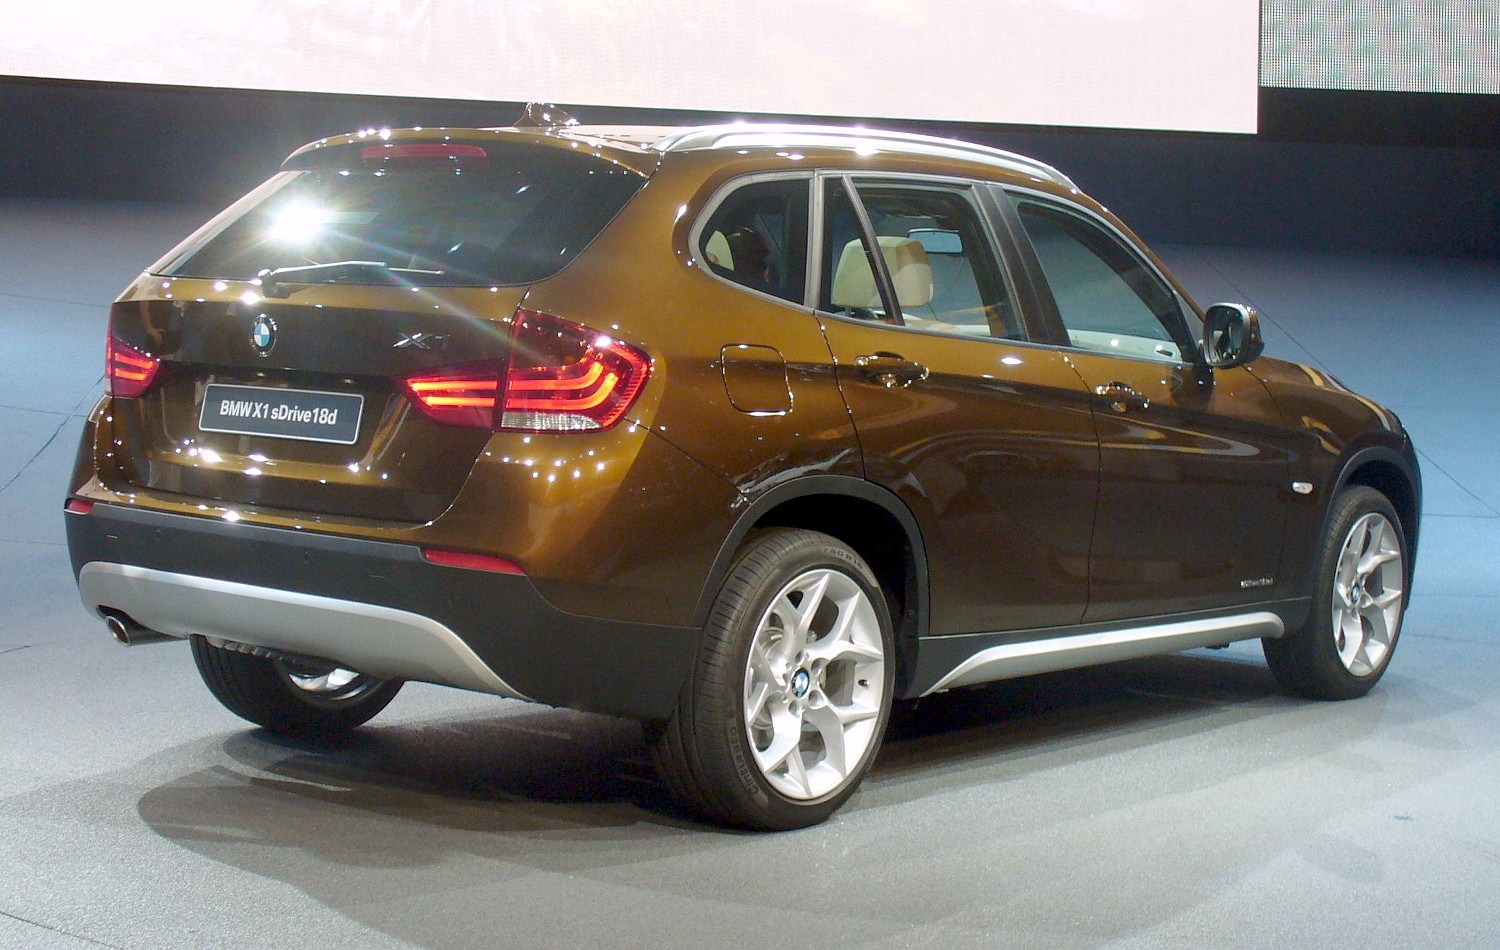 File Bmw X1 Sdrive18d Heck Jpg Wikimedia Commons